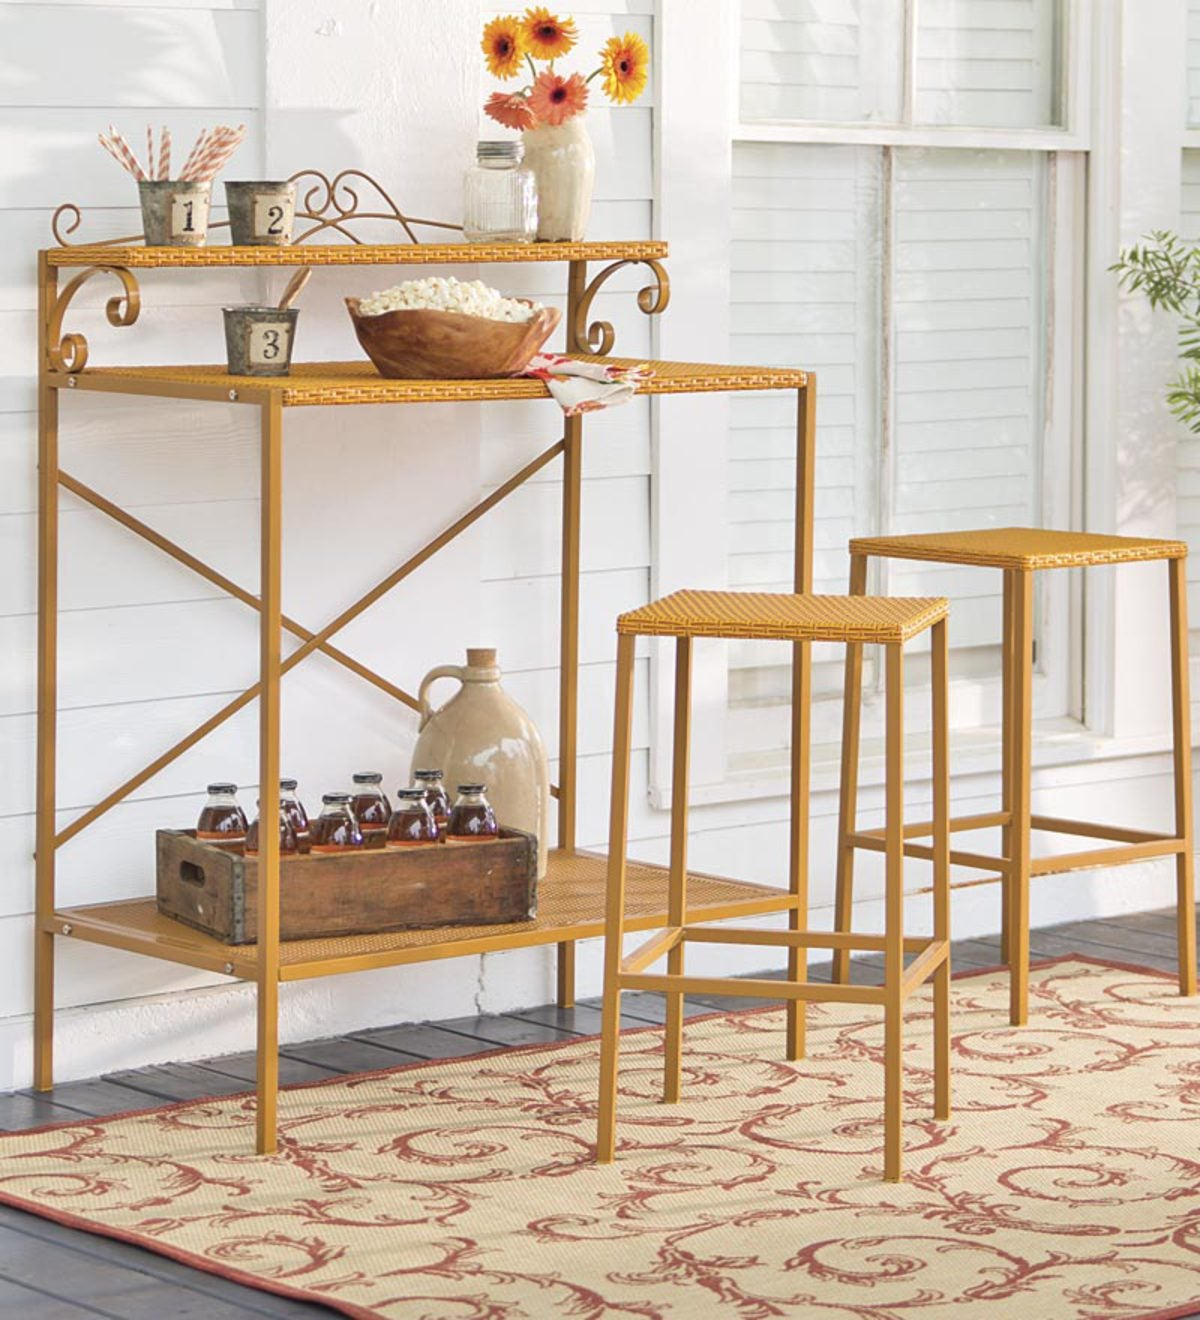 Outdoor Wicker Sideboard And Stool Set Tan